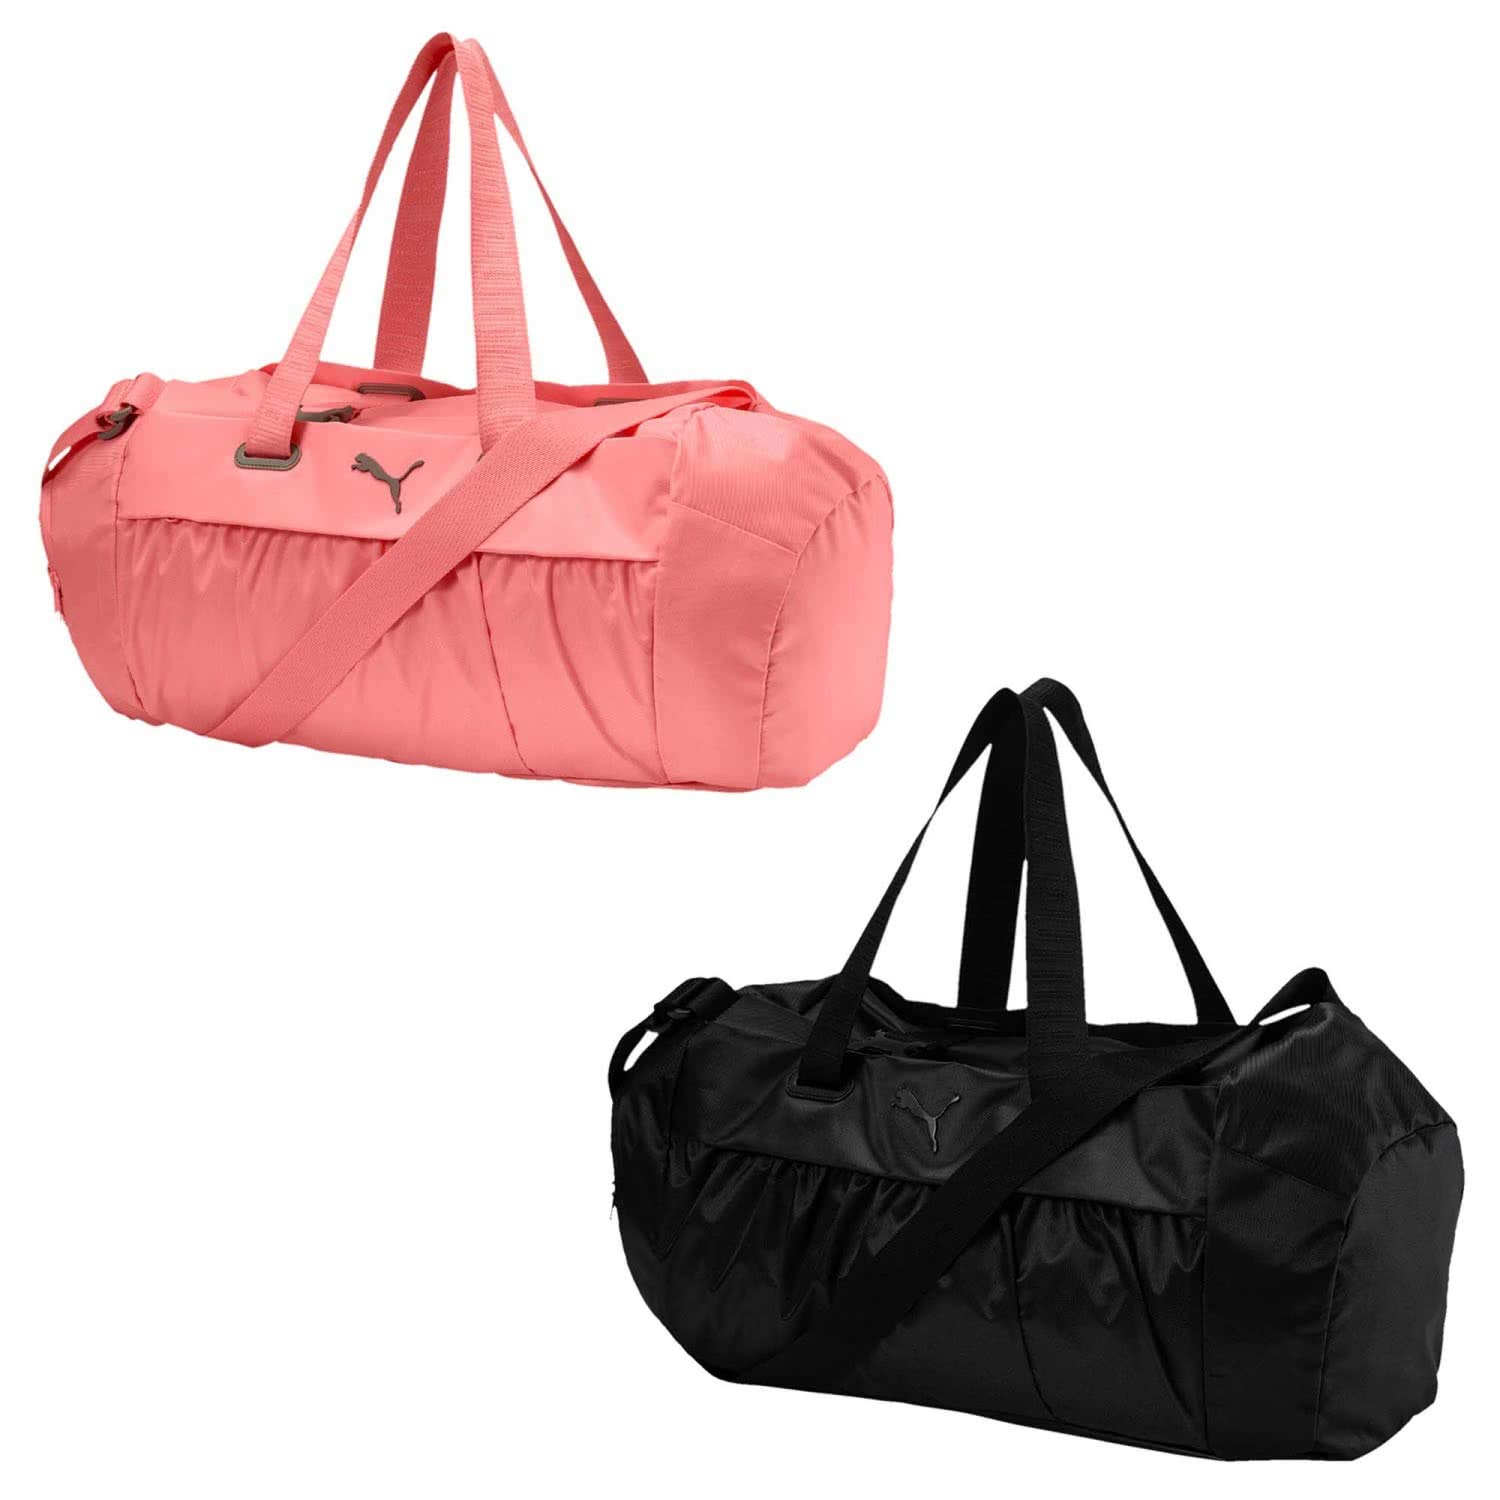 Amazon.com: PUMA at Sports 75048 - Bolsa de deporte para ...